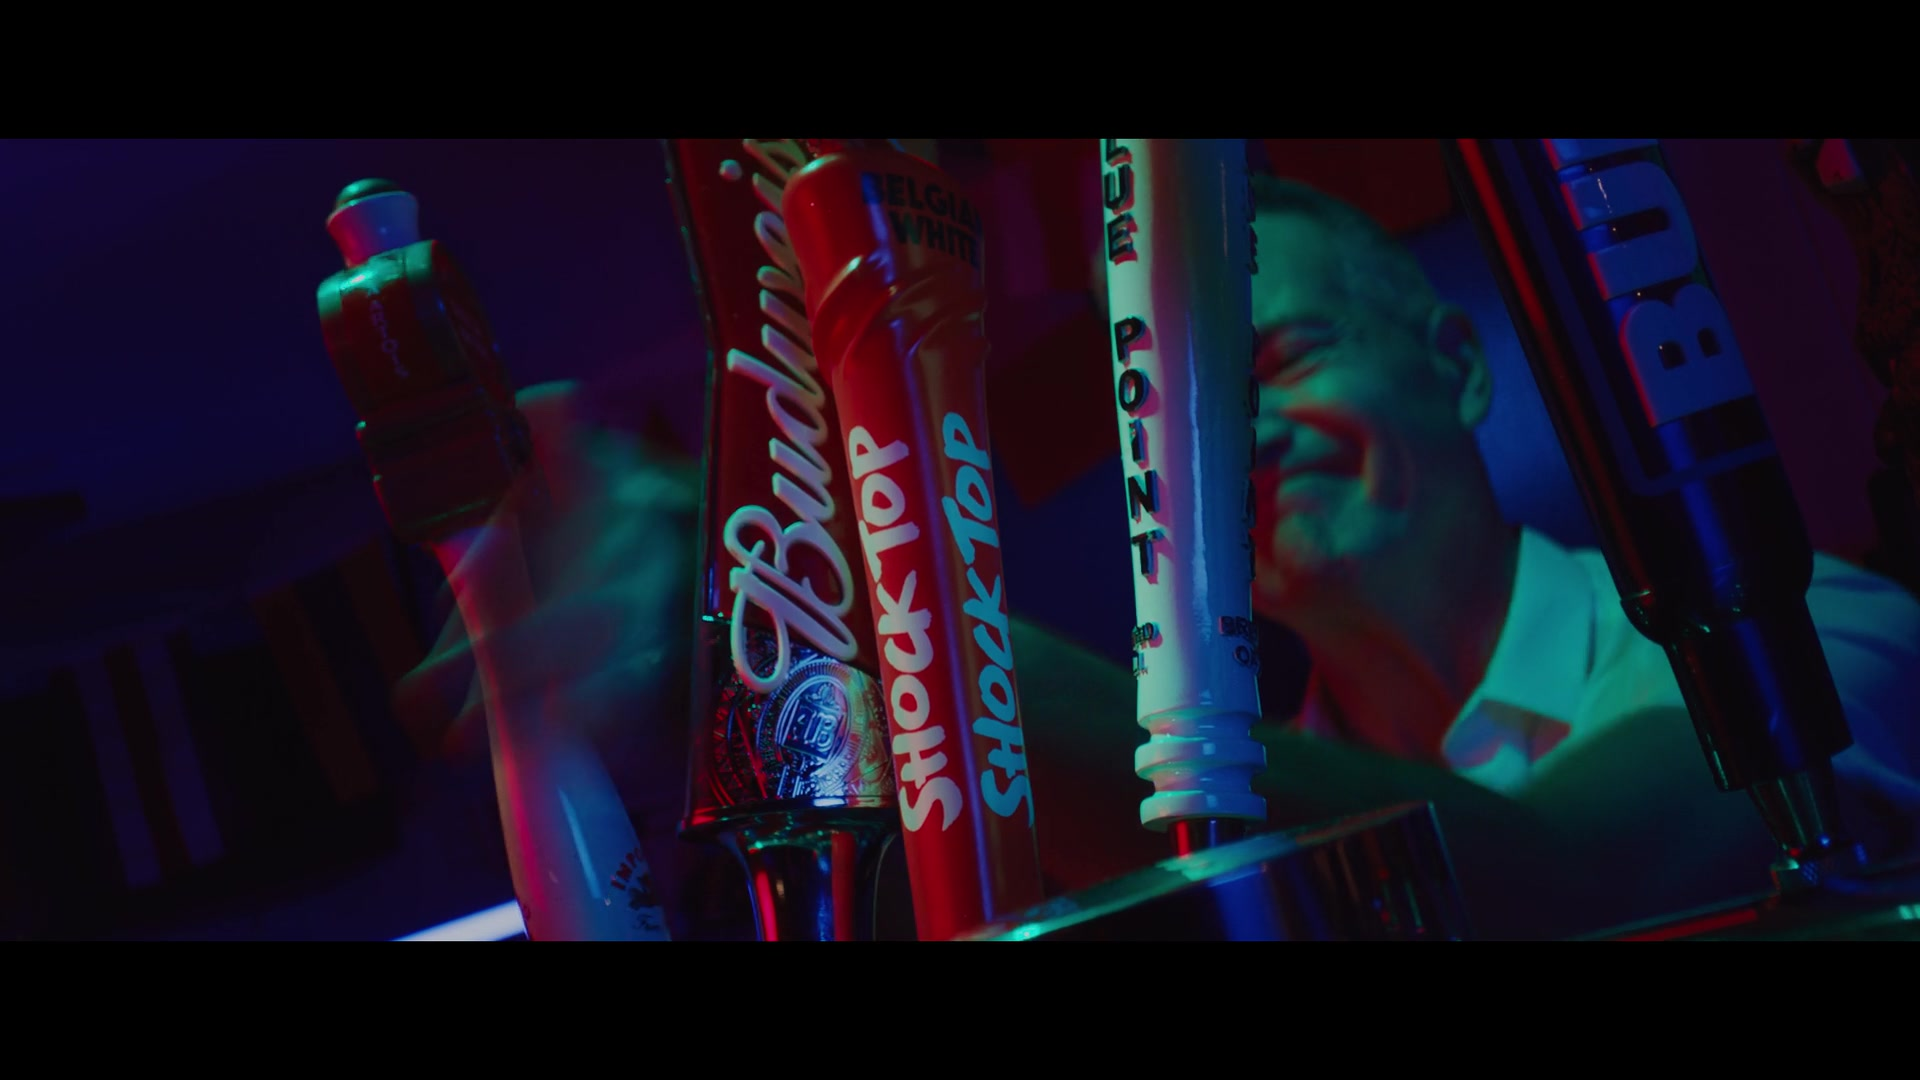 9fcf09af45286 Budweiser, Shock Top, Blue Point and Bud Light Beer in Isn't It Romantic  (2019)